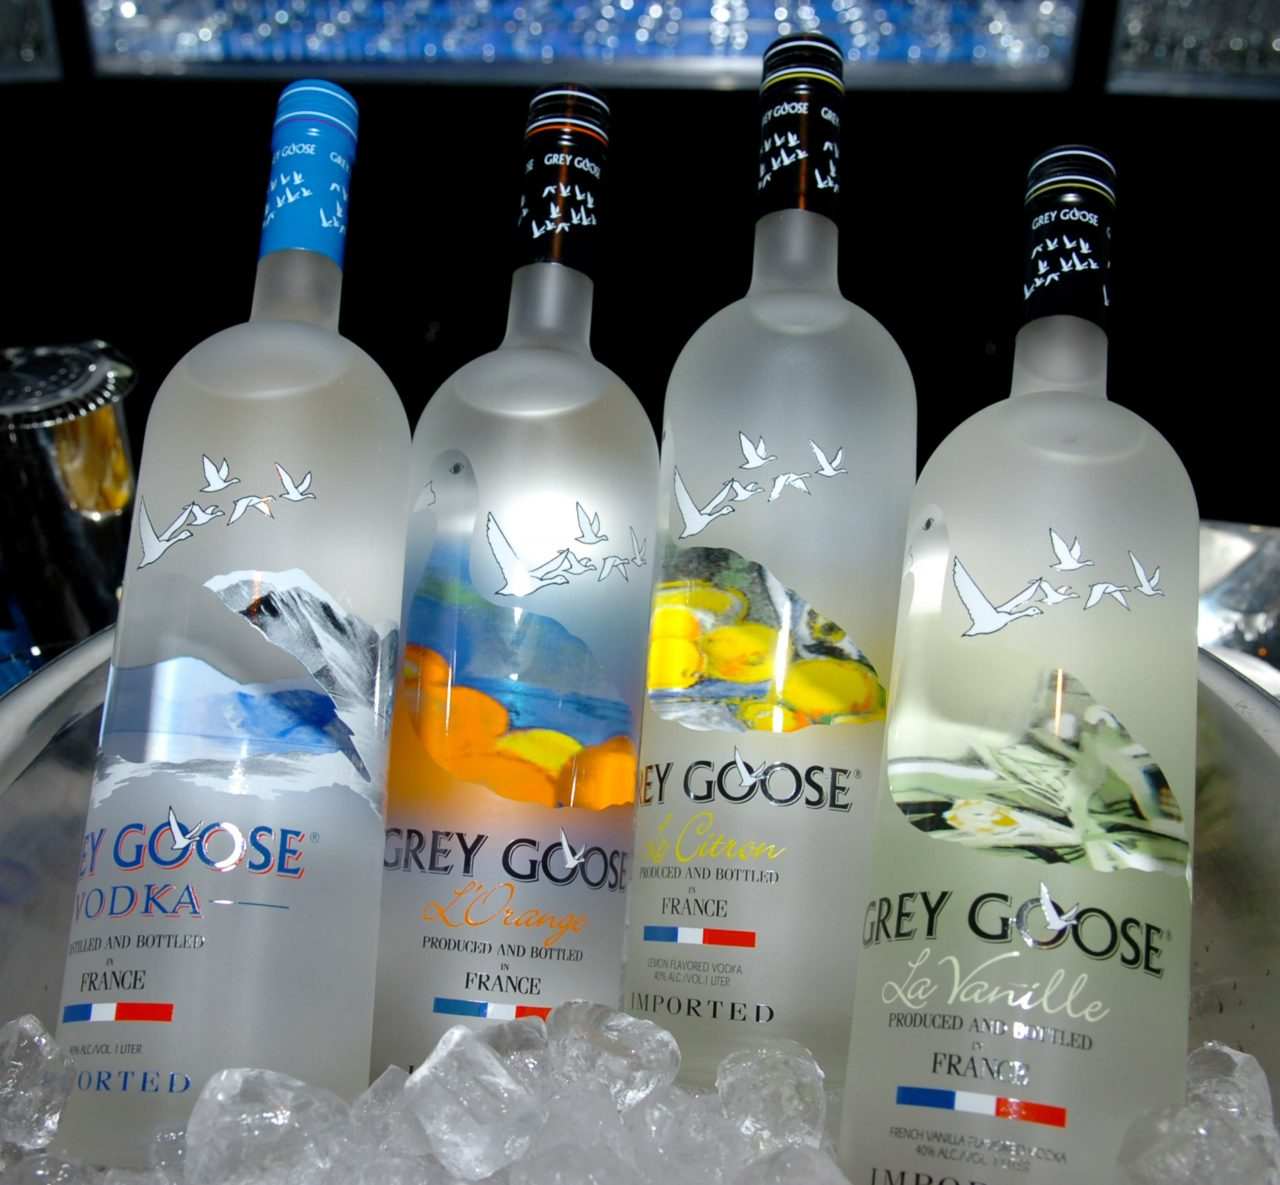 Gotham Magazine and Grey Goose Vodka Reveal the Best Bartender in New York City